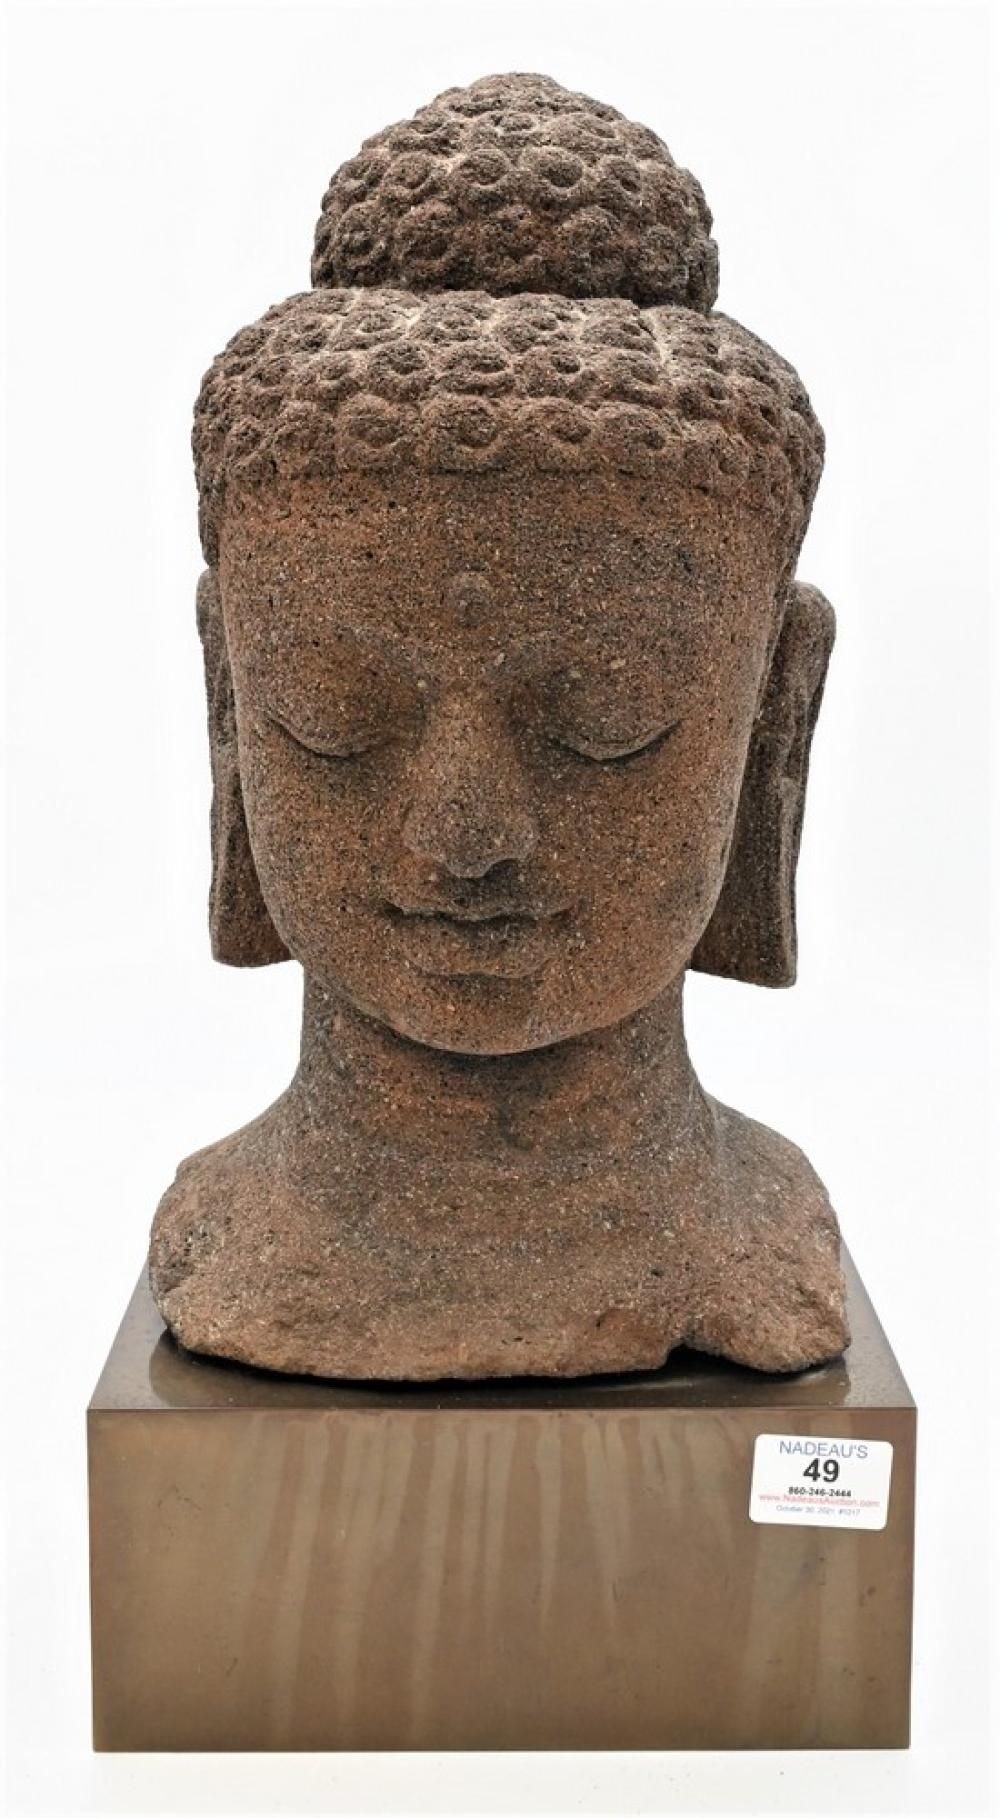 Large Carved Sandstone Head of a Buddhasitting on pedestal baseheight 18 1/2 inches